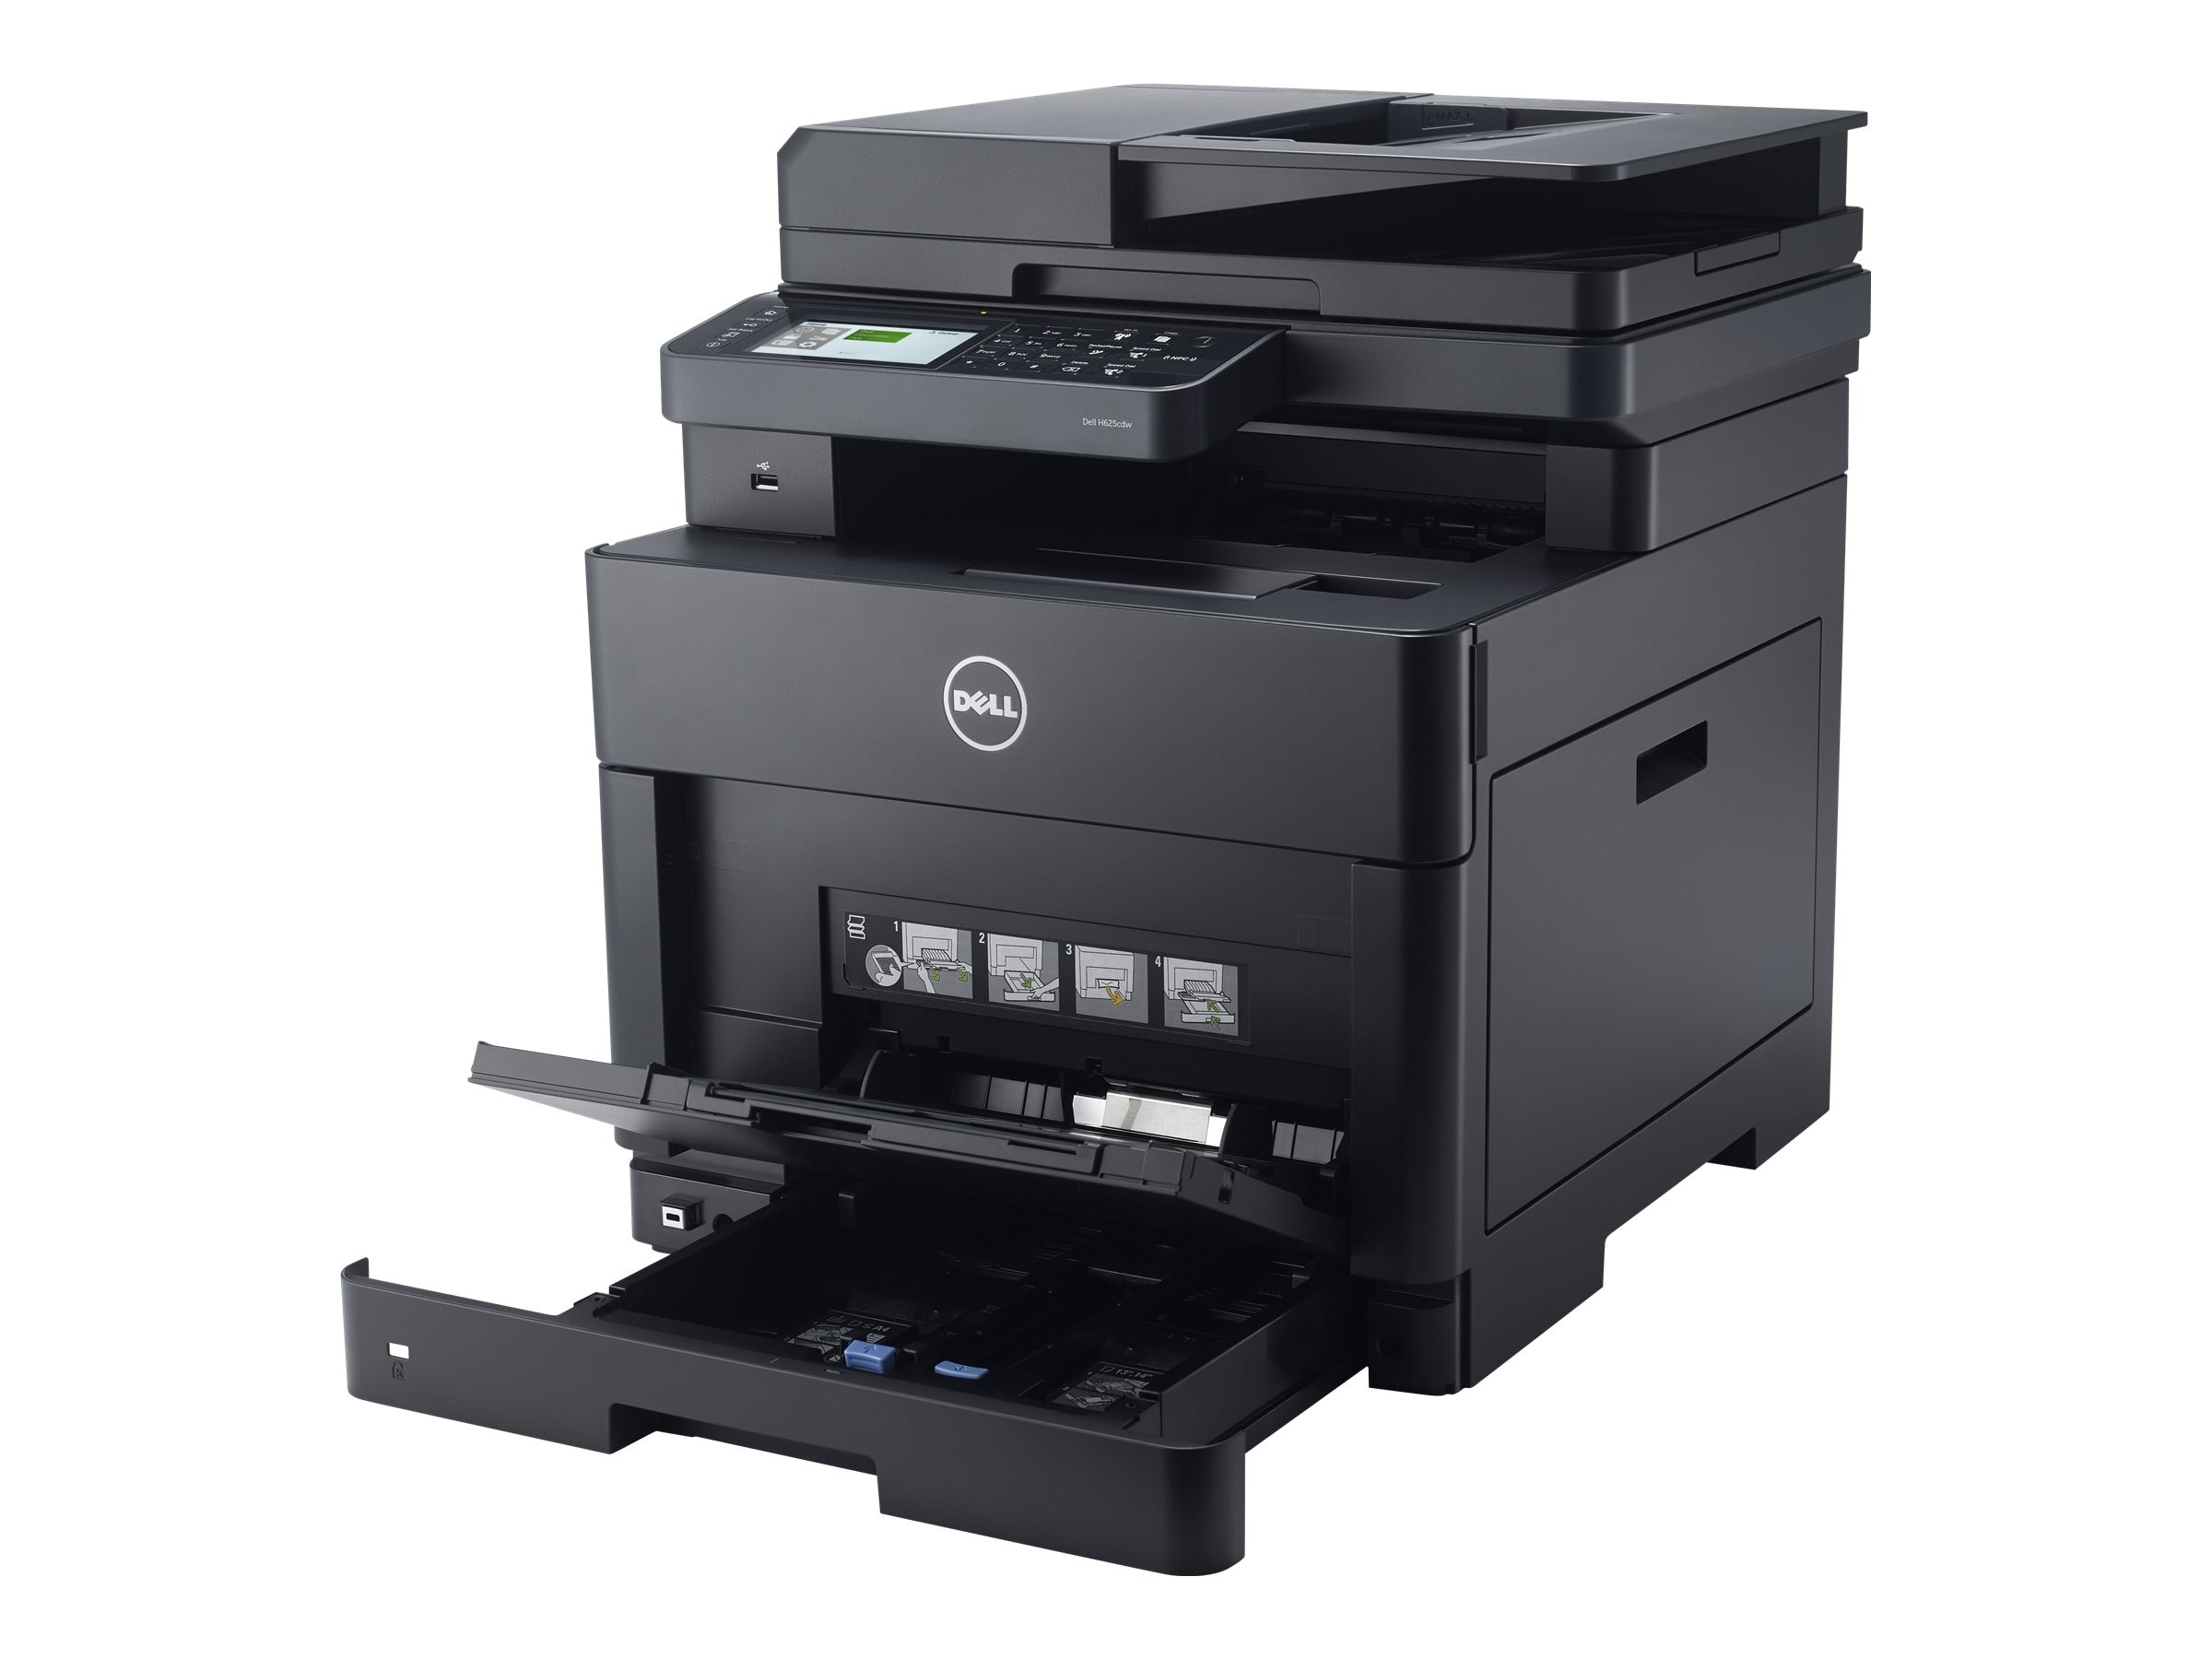 Dell Color Smart Multifinction Printer - H625cdw, 4MYG3